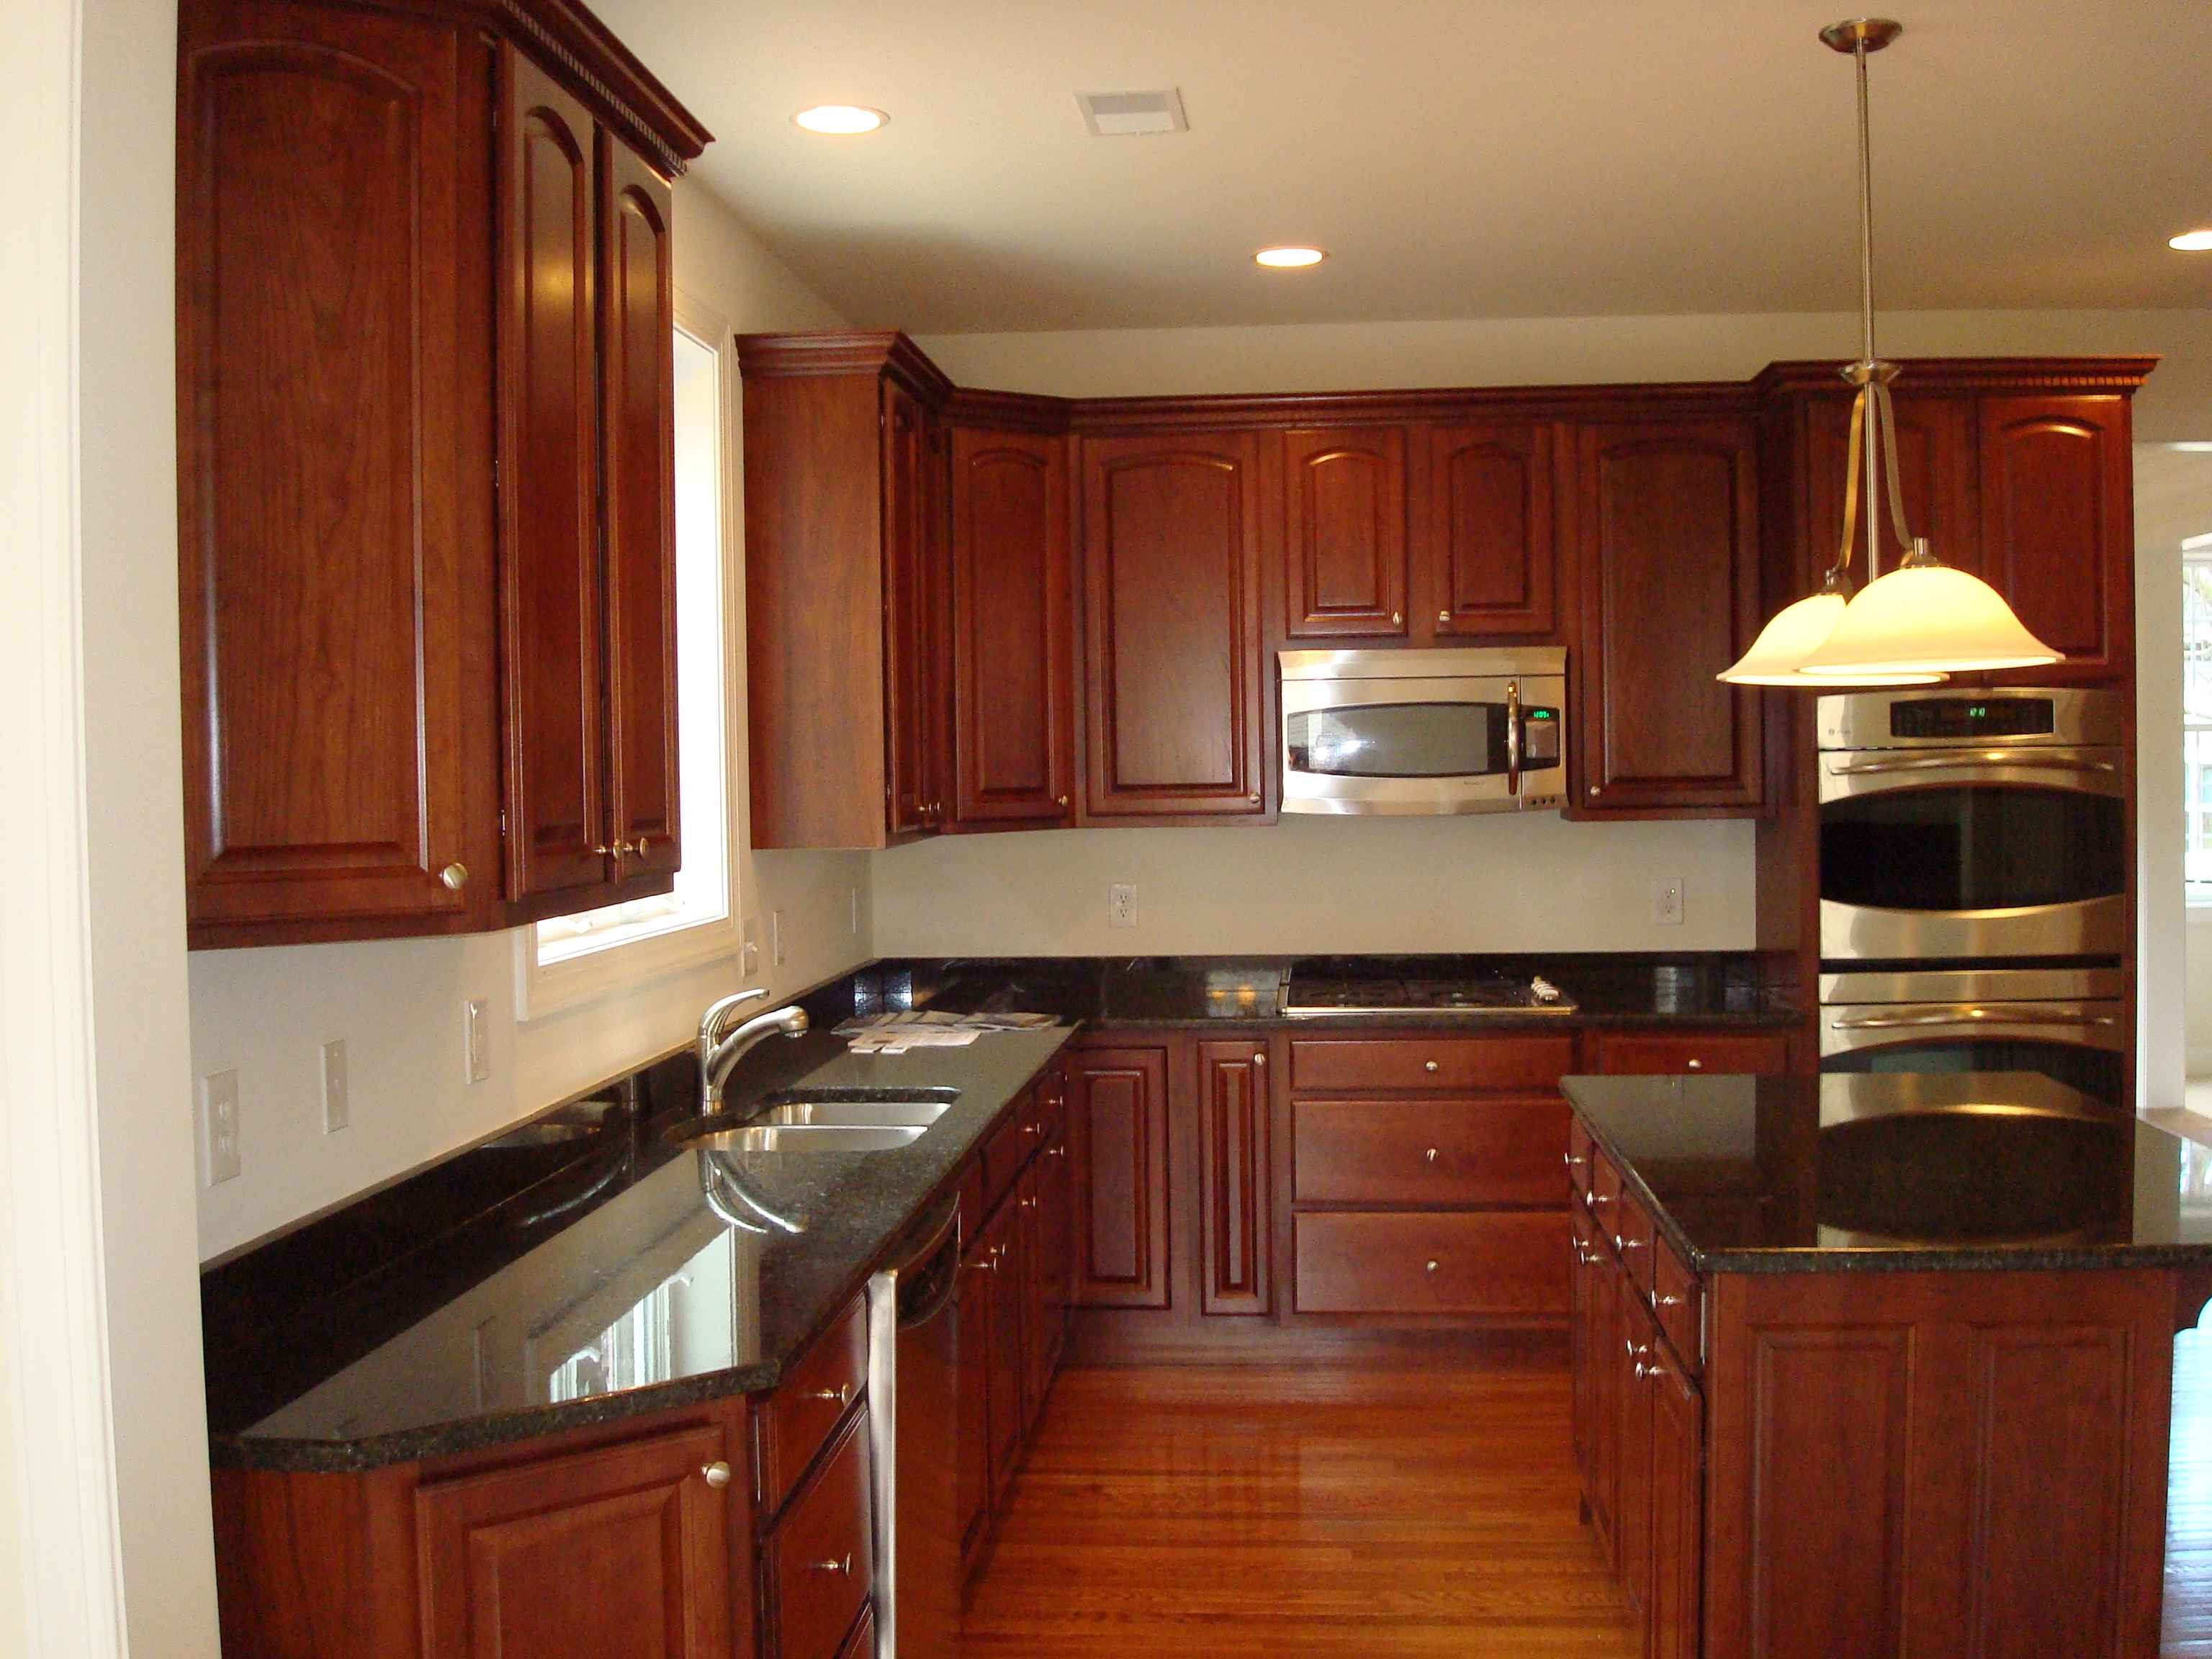 kitchens bathrooms kitchen and bathroom remodeling Kitchen Remodeling Kitchen remodeling